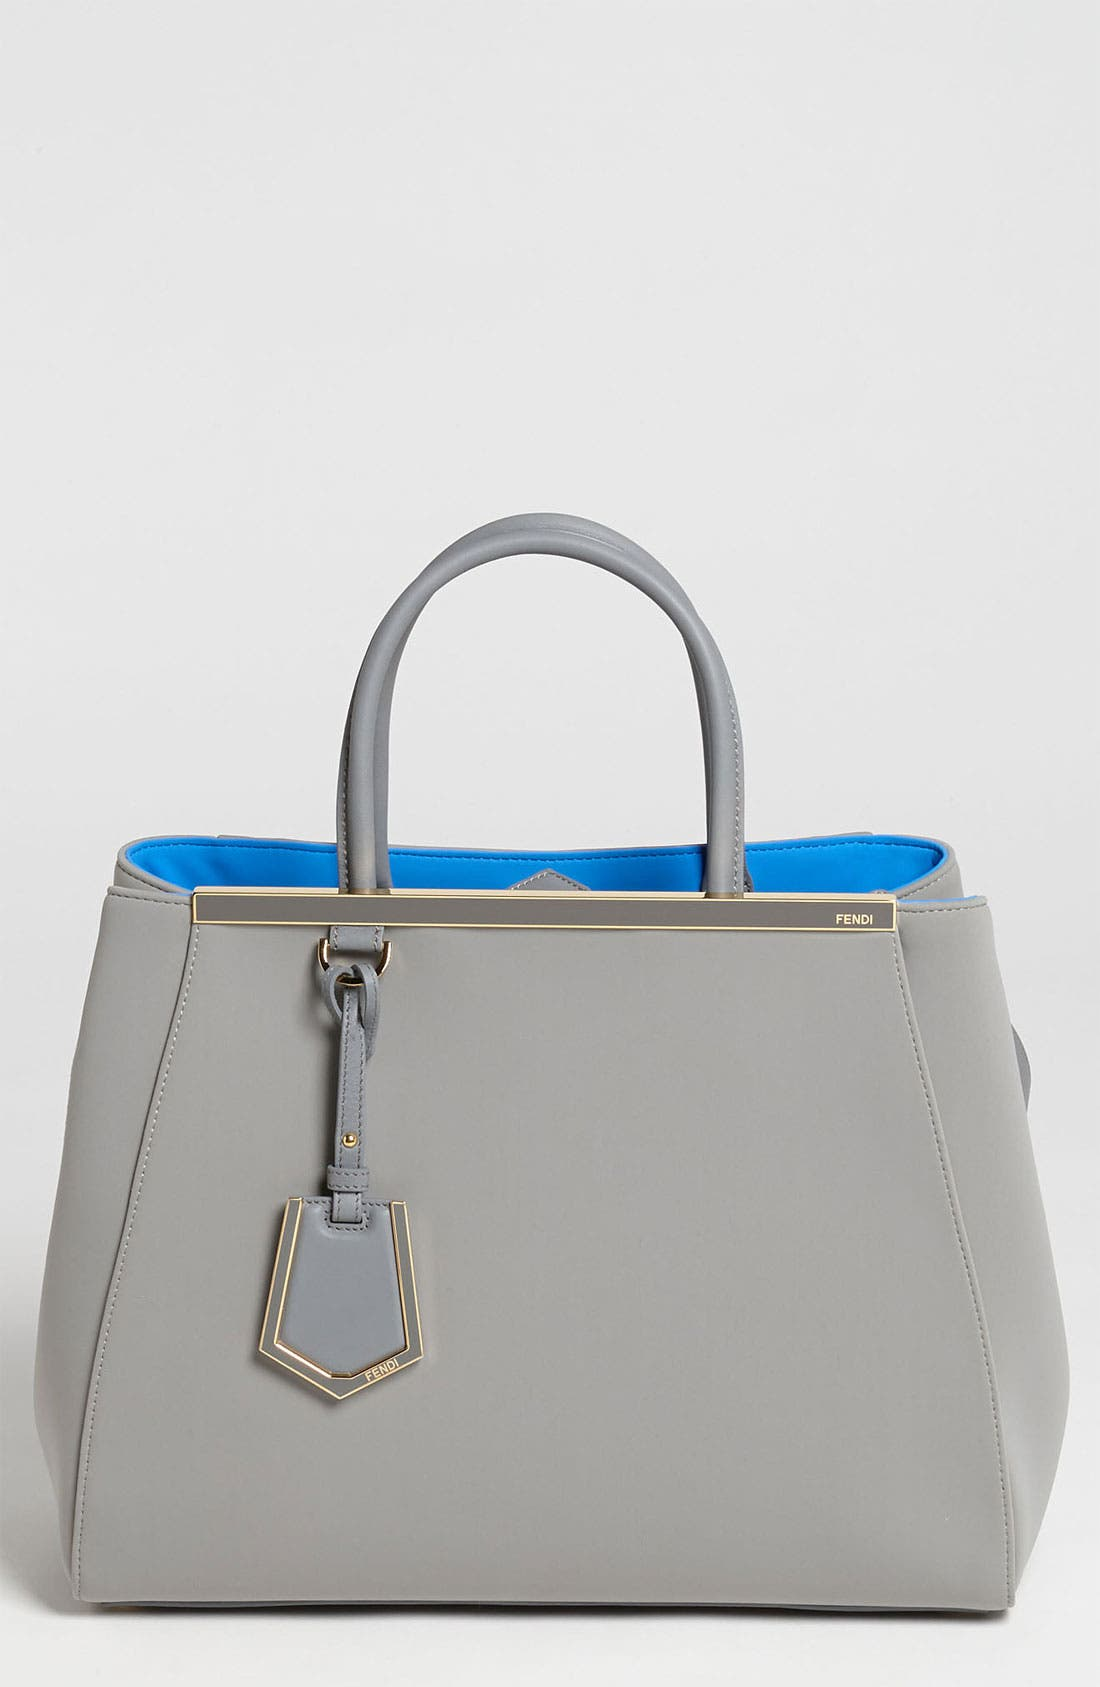 Main Image - Fendi 'Medium 2Jours' Neoprene Satchel